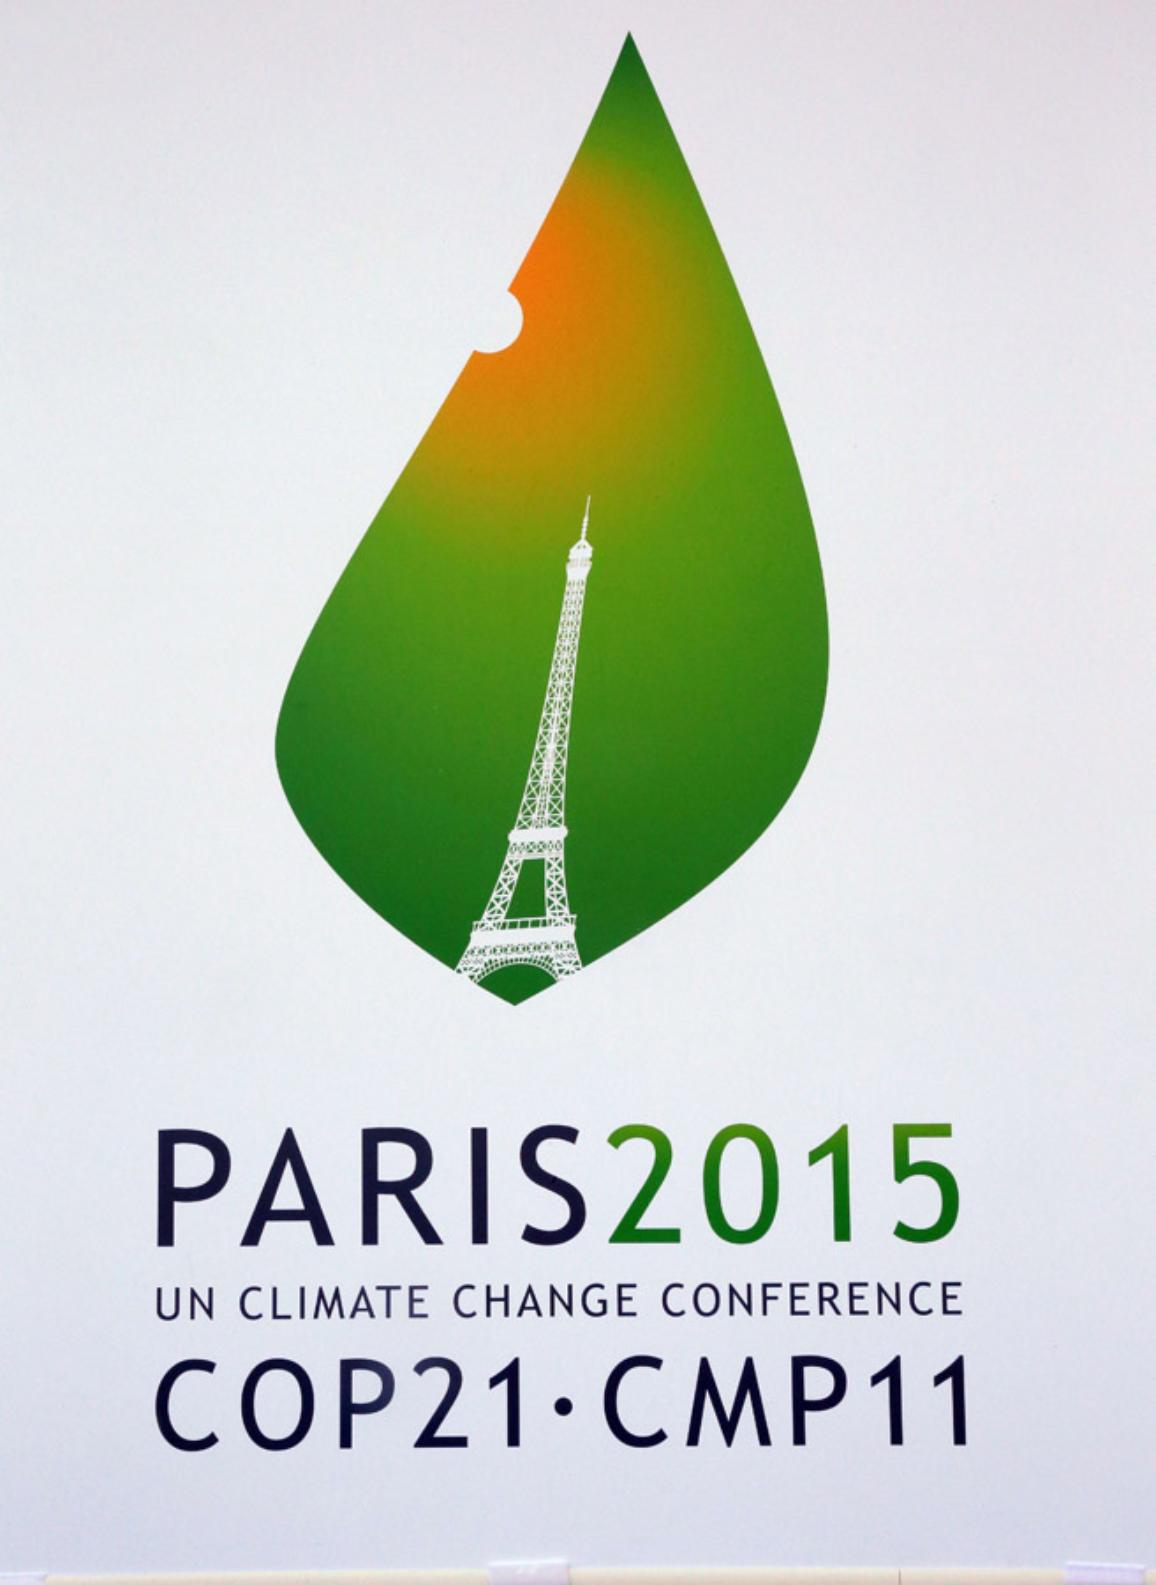 The logo of the upcoming UN Climate Change Conference, the Cop 21 summit in Paris, on January 14, 2015. ©BELGA/AFP/J.Demarthon